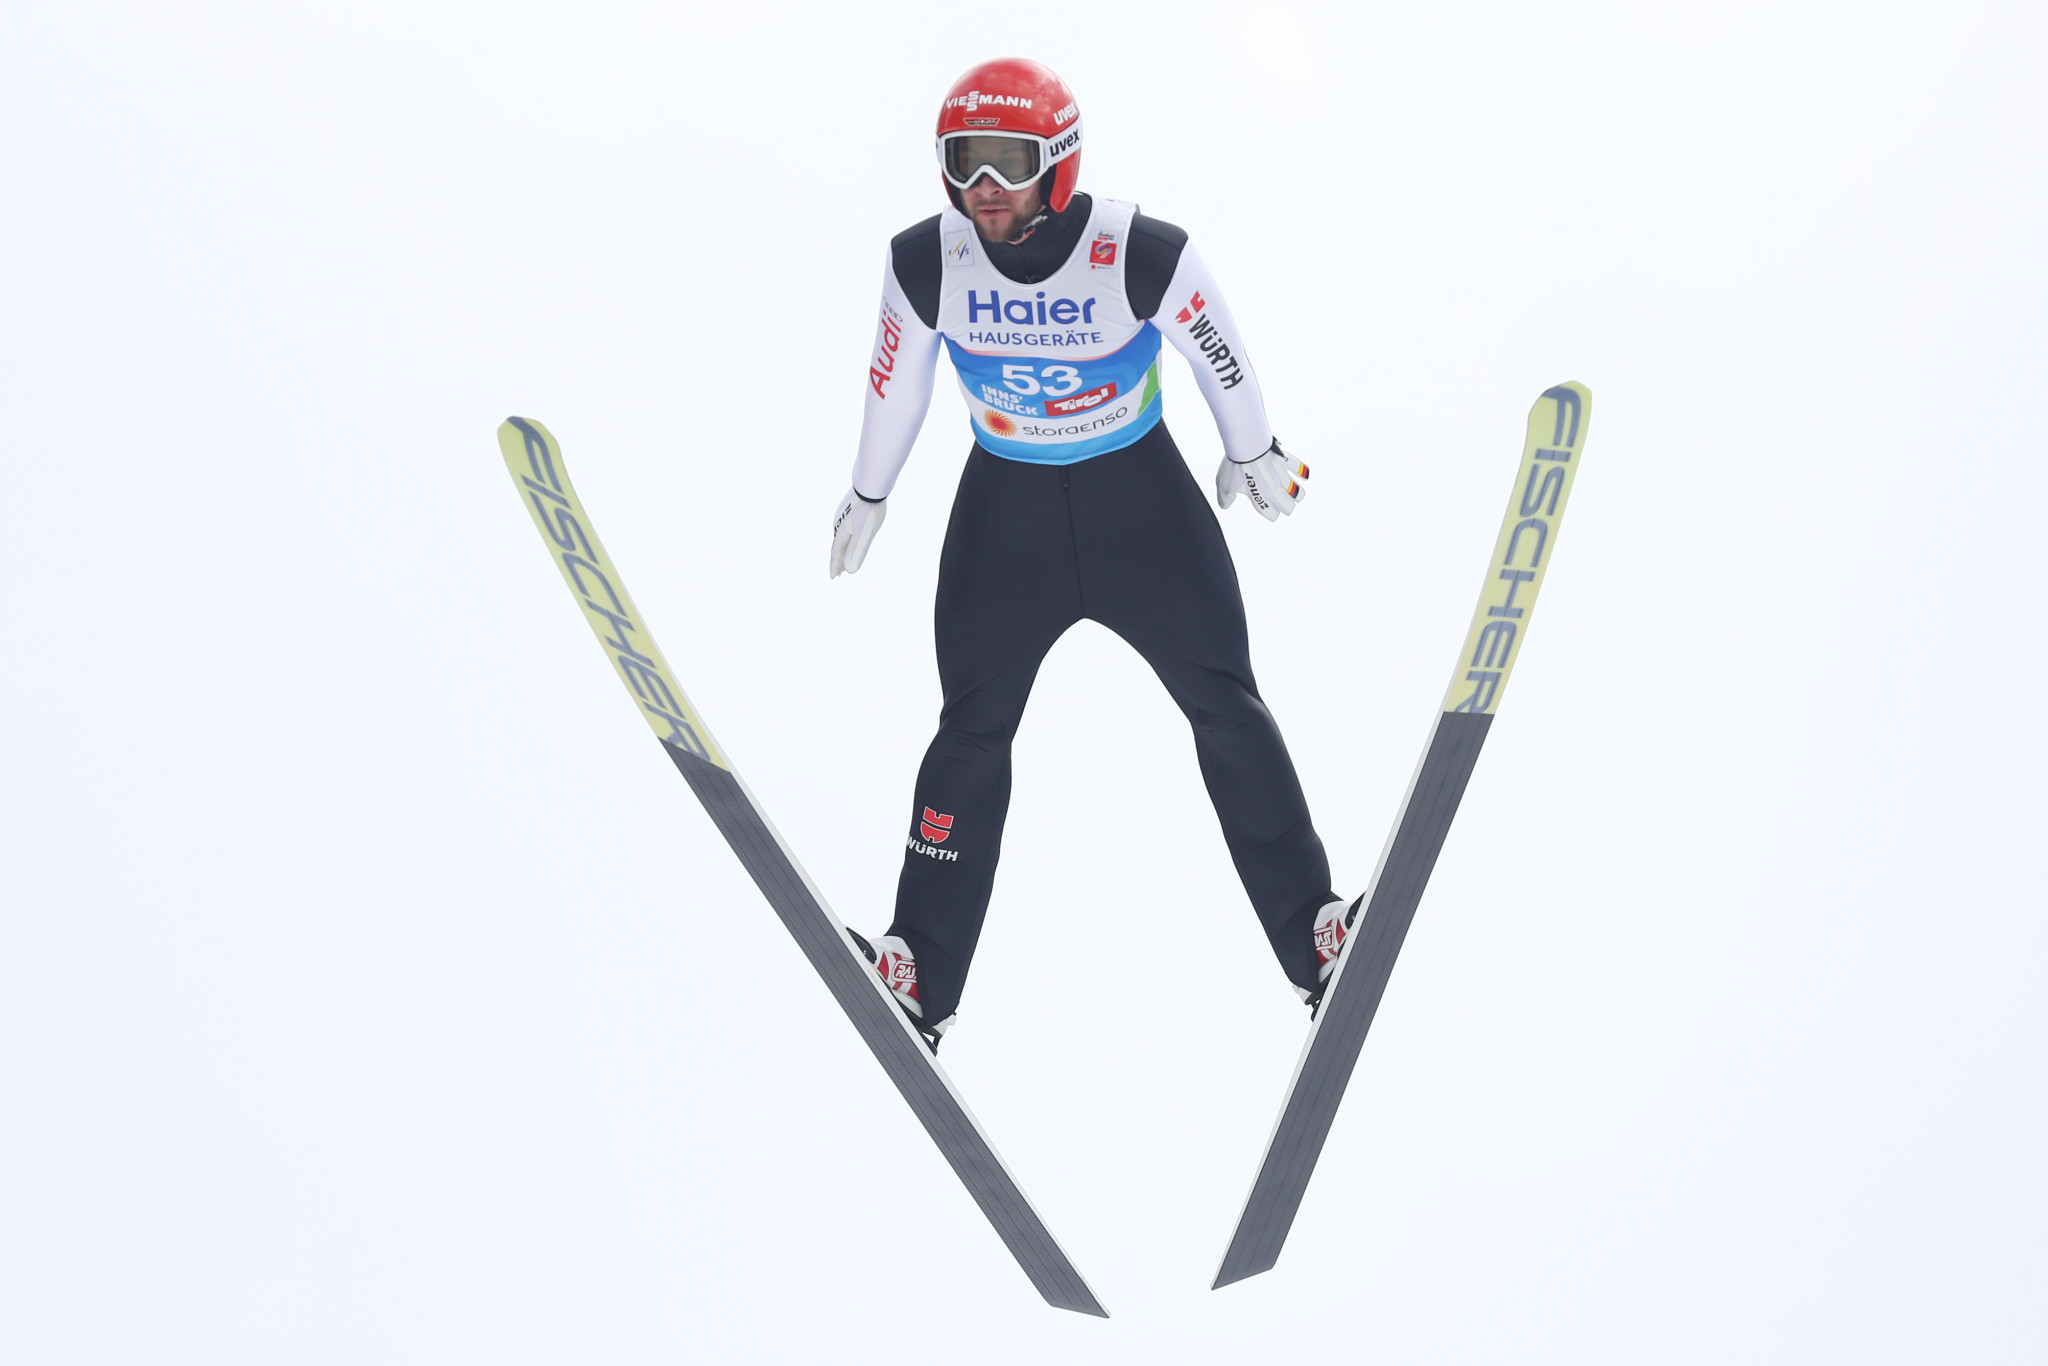 Germany's Markus Eisenbichler topped qualifying in the men's ski jumping at the FIS Nordic World Ski Championships ©Getty Images